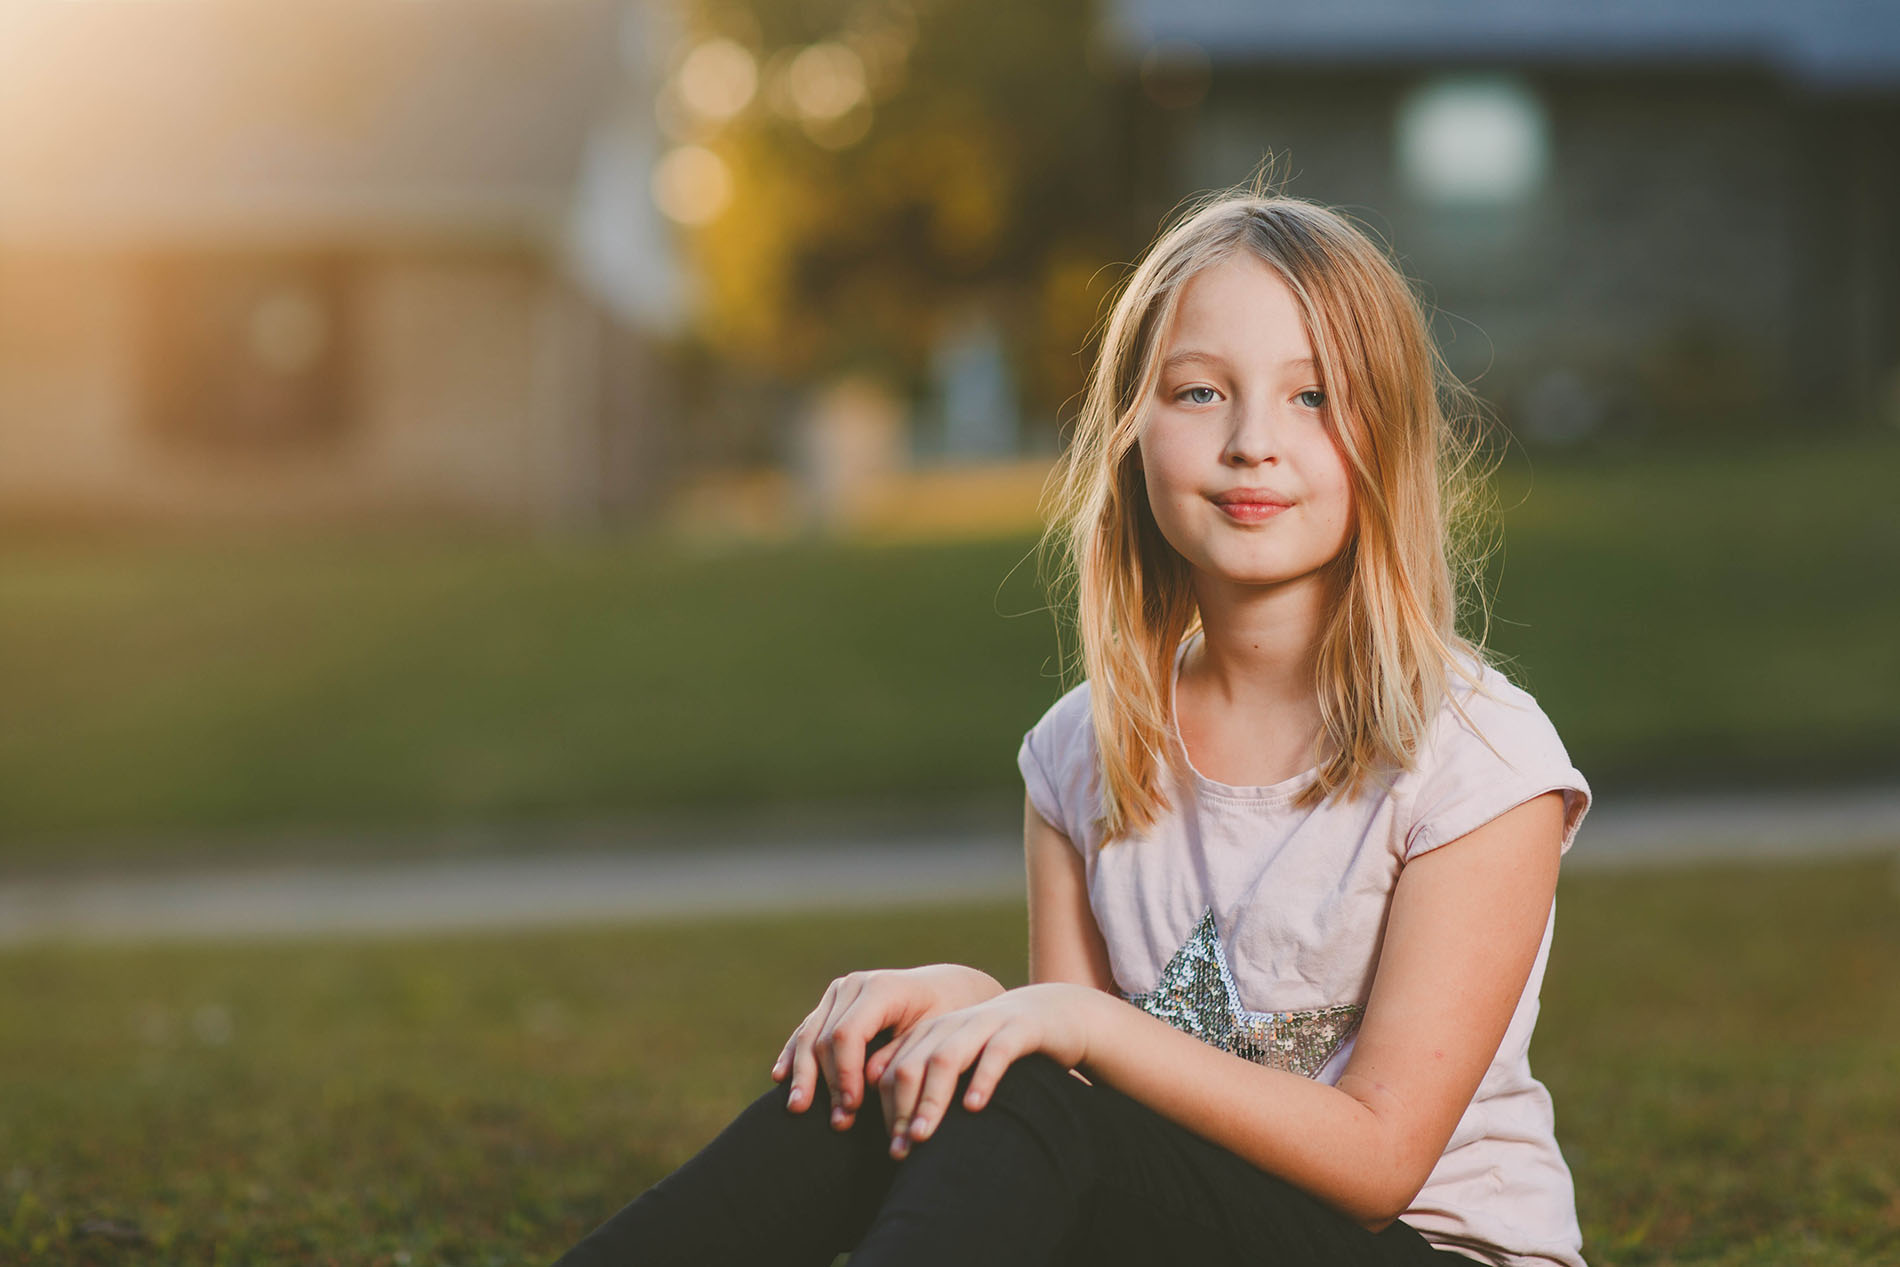 backlit photo of girl outdoors with the Profoto B1 off camera flash by April Nienhuis